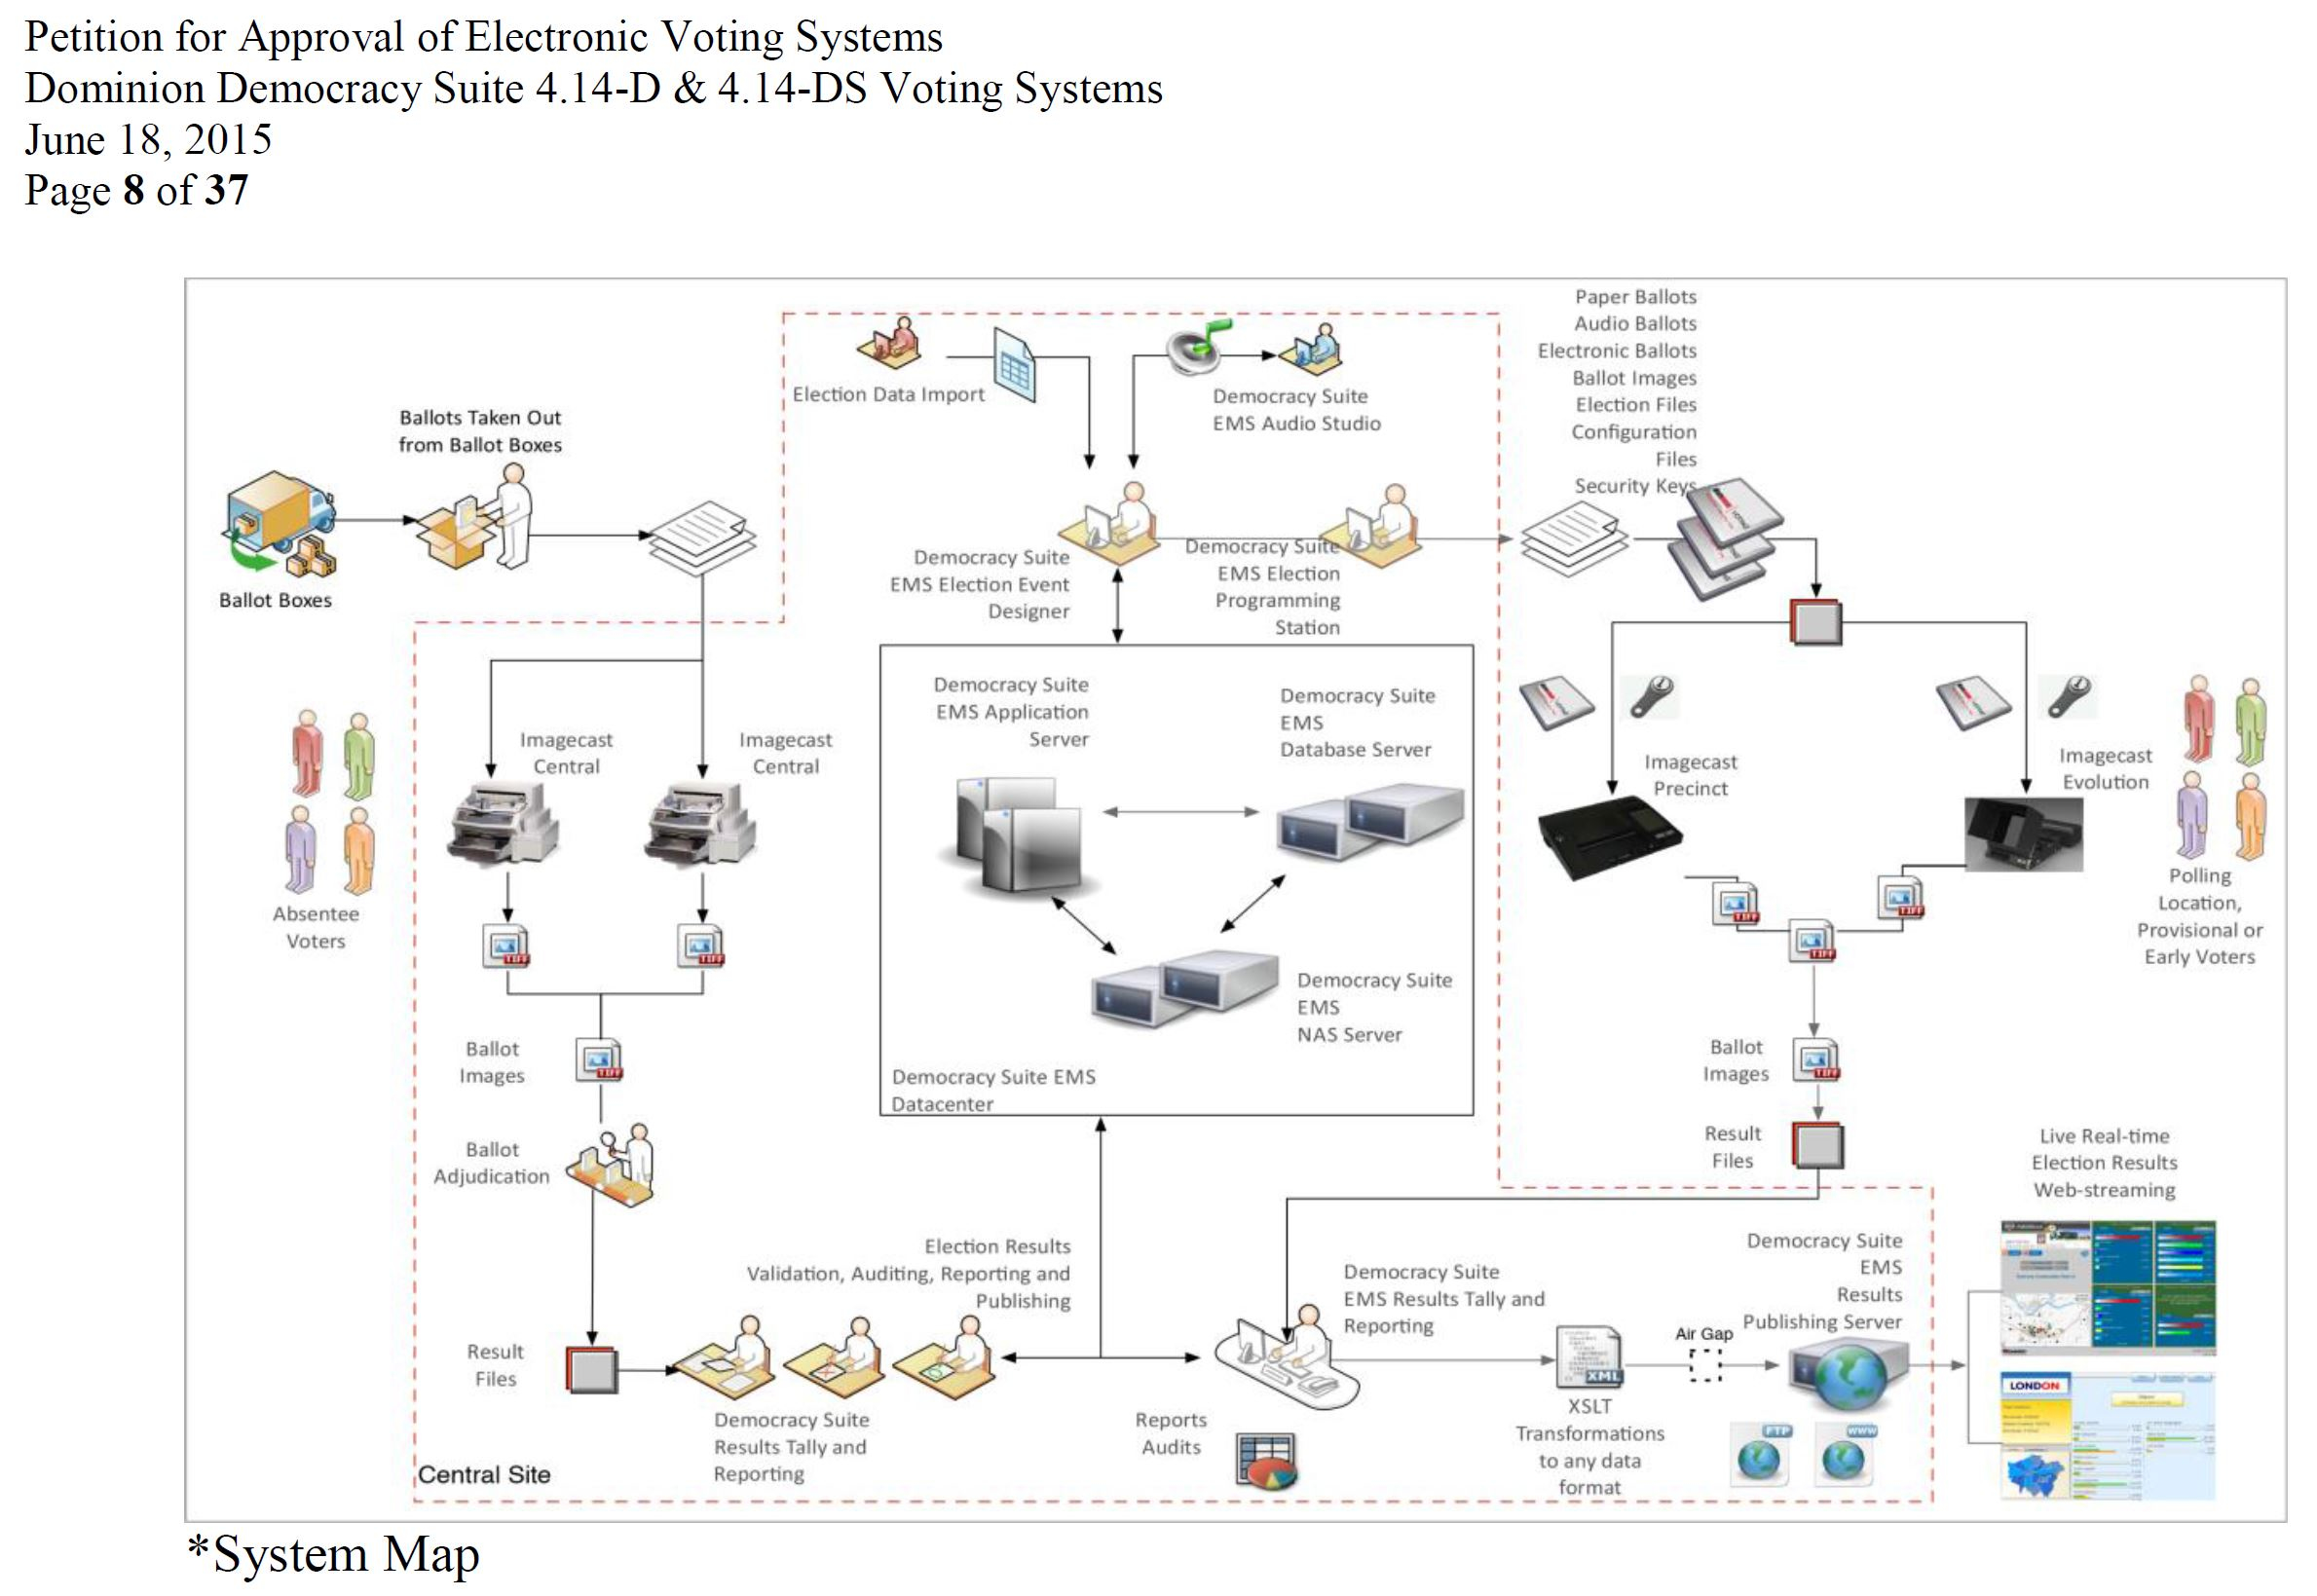 Dominion Voting Systems. (Accessed Nov. 18, 2020). Approved Electronic Voting Systems from Dominion Voting Systems, Democracy Suite 4.14-D and 4.14-DS, approved on Jun. 18, 2015 by the Government Accountability Board, PDF p. 16, 17. Wisconsin Elections Commission.